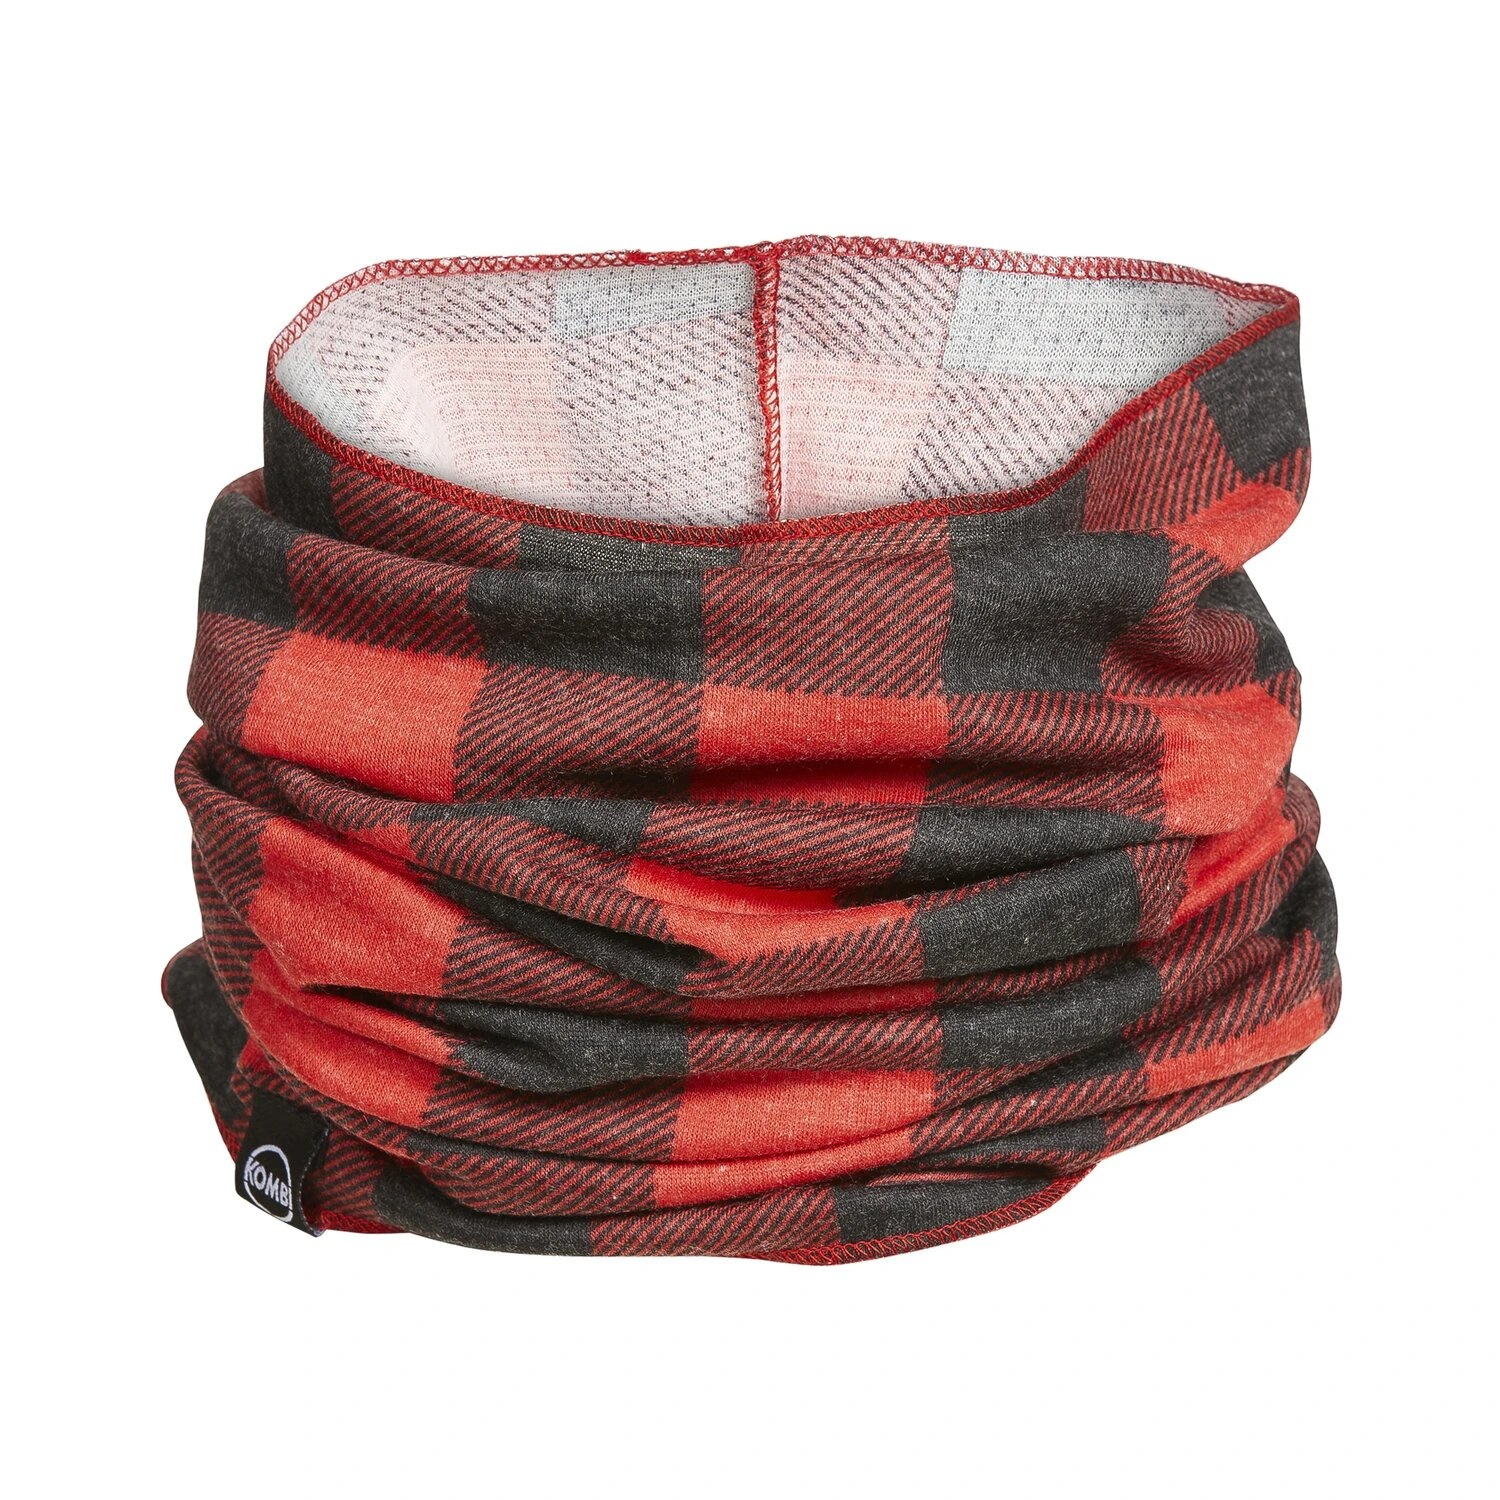 Kombi Multi Scarf, Assorted Colours